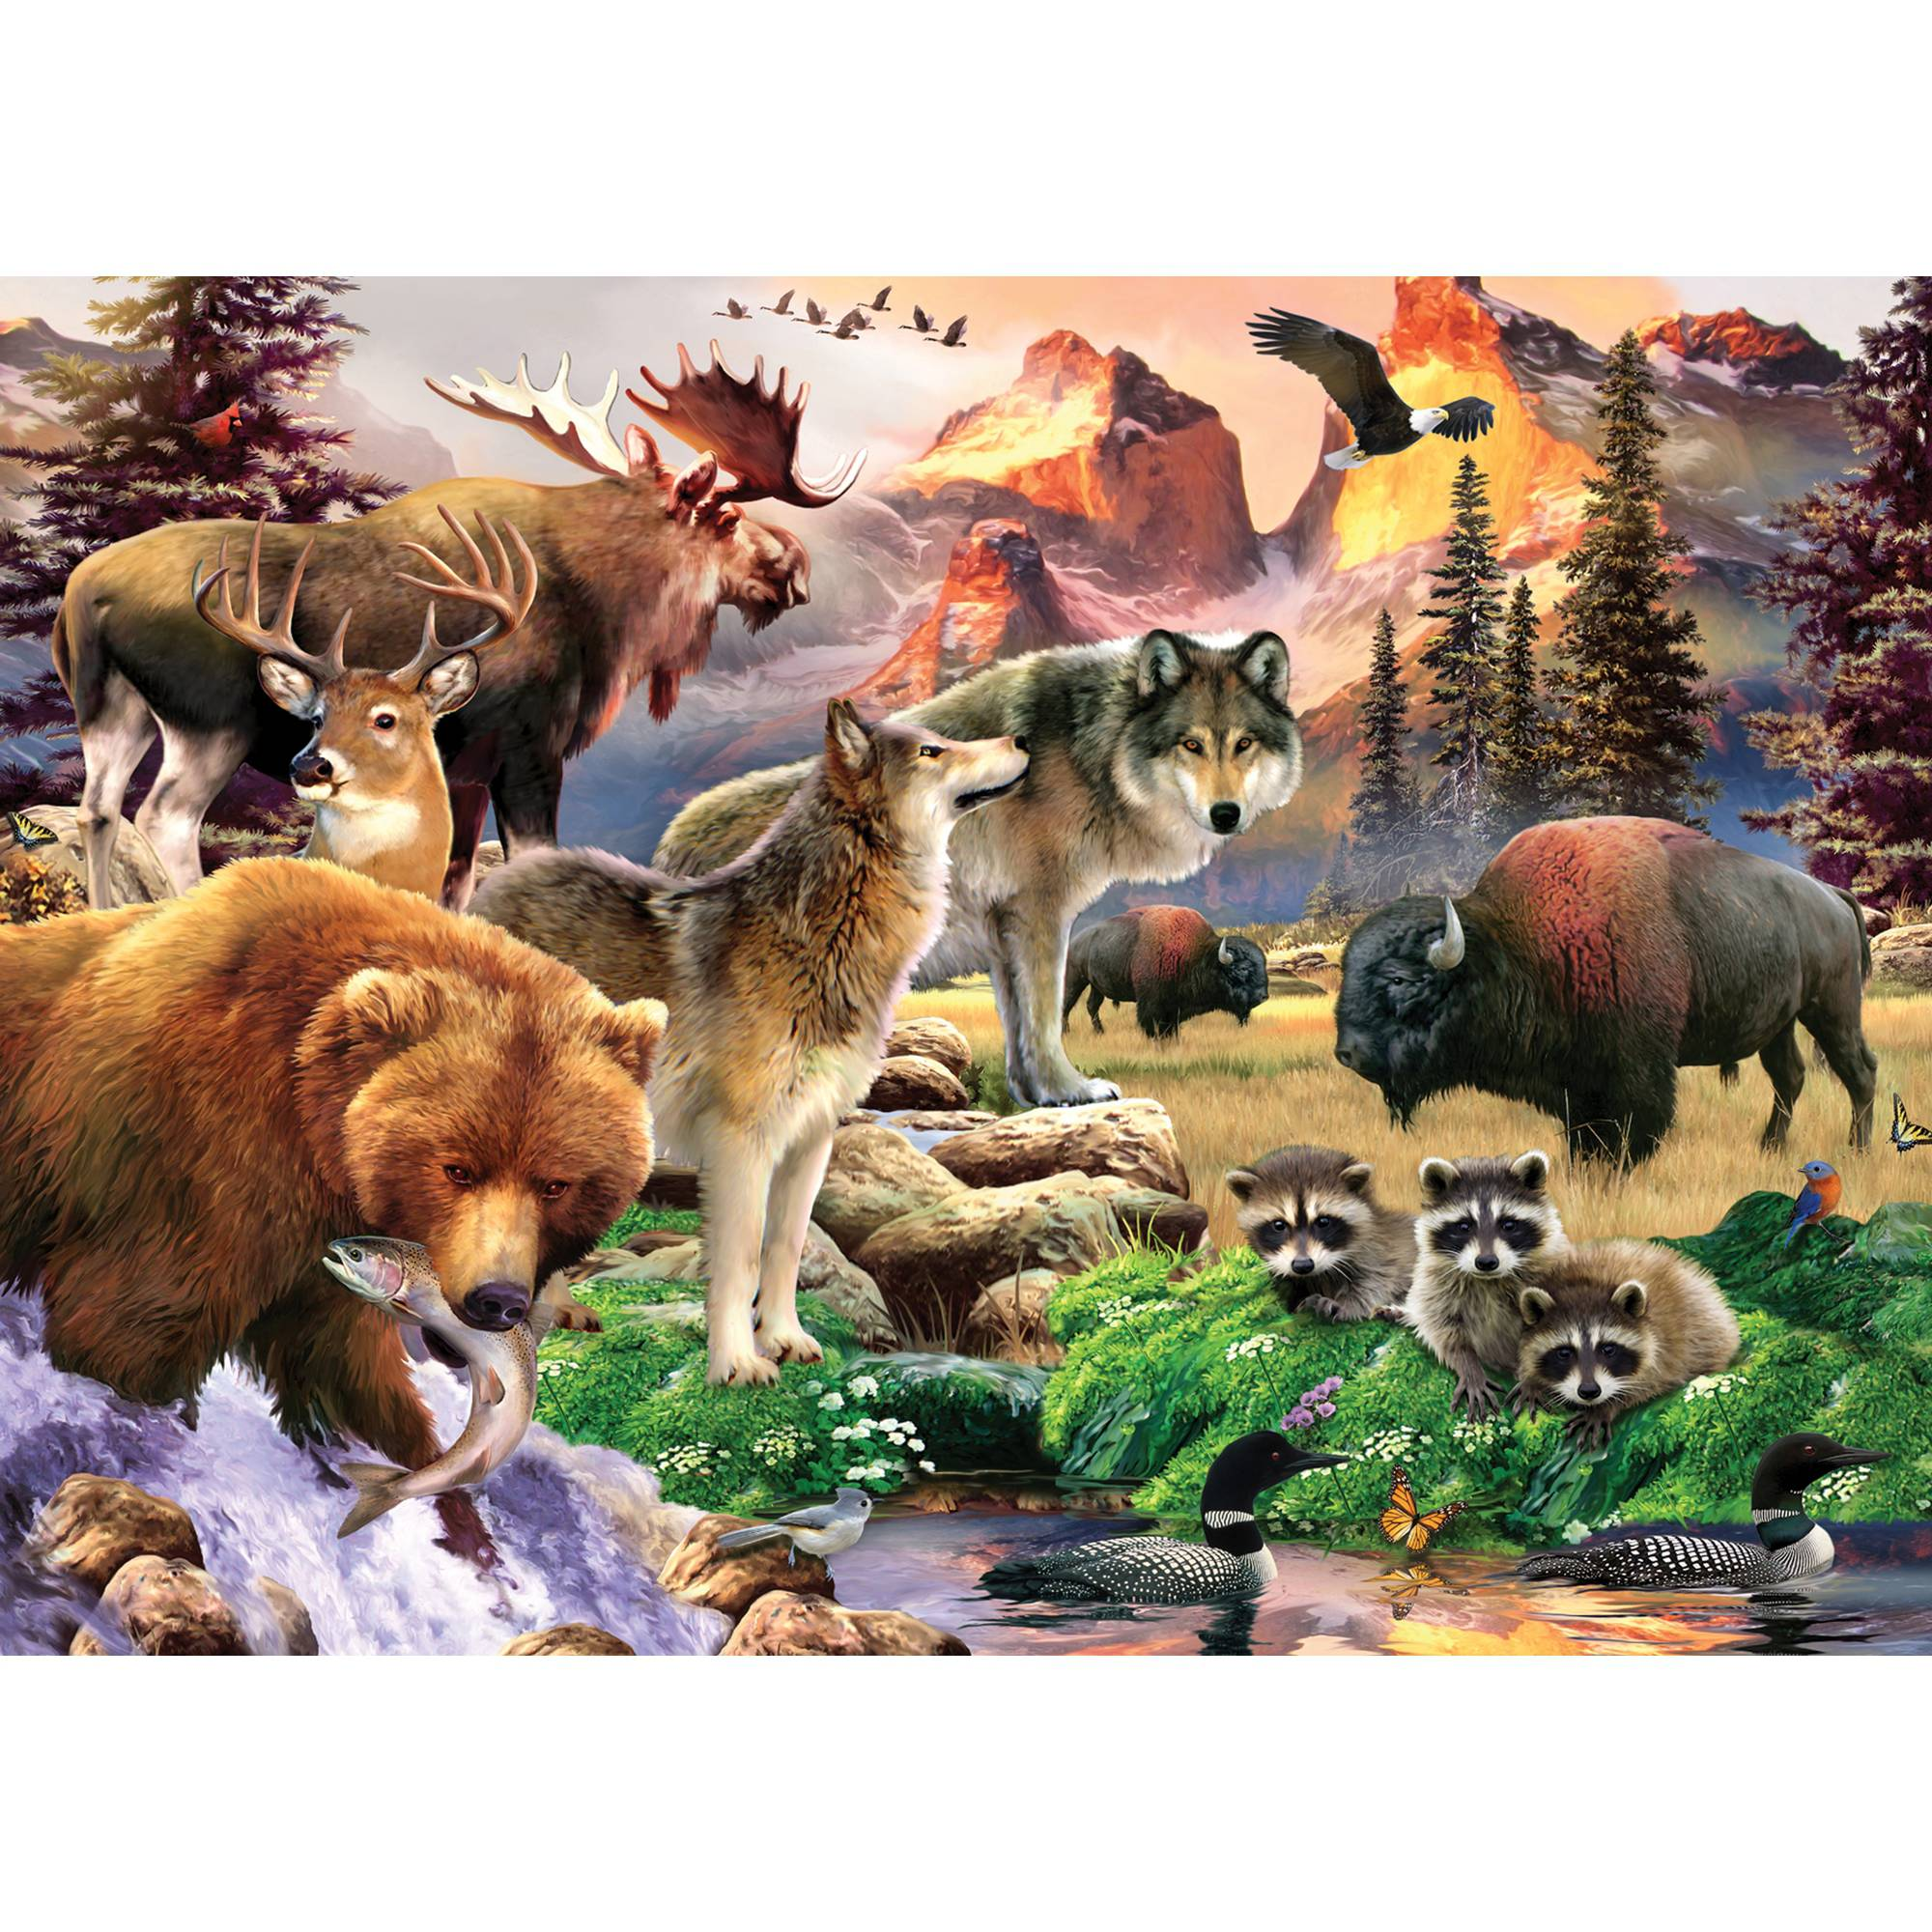 MasterPieces Call of the Wild 500 Piece Puzzle